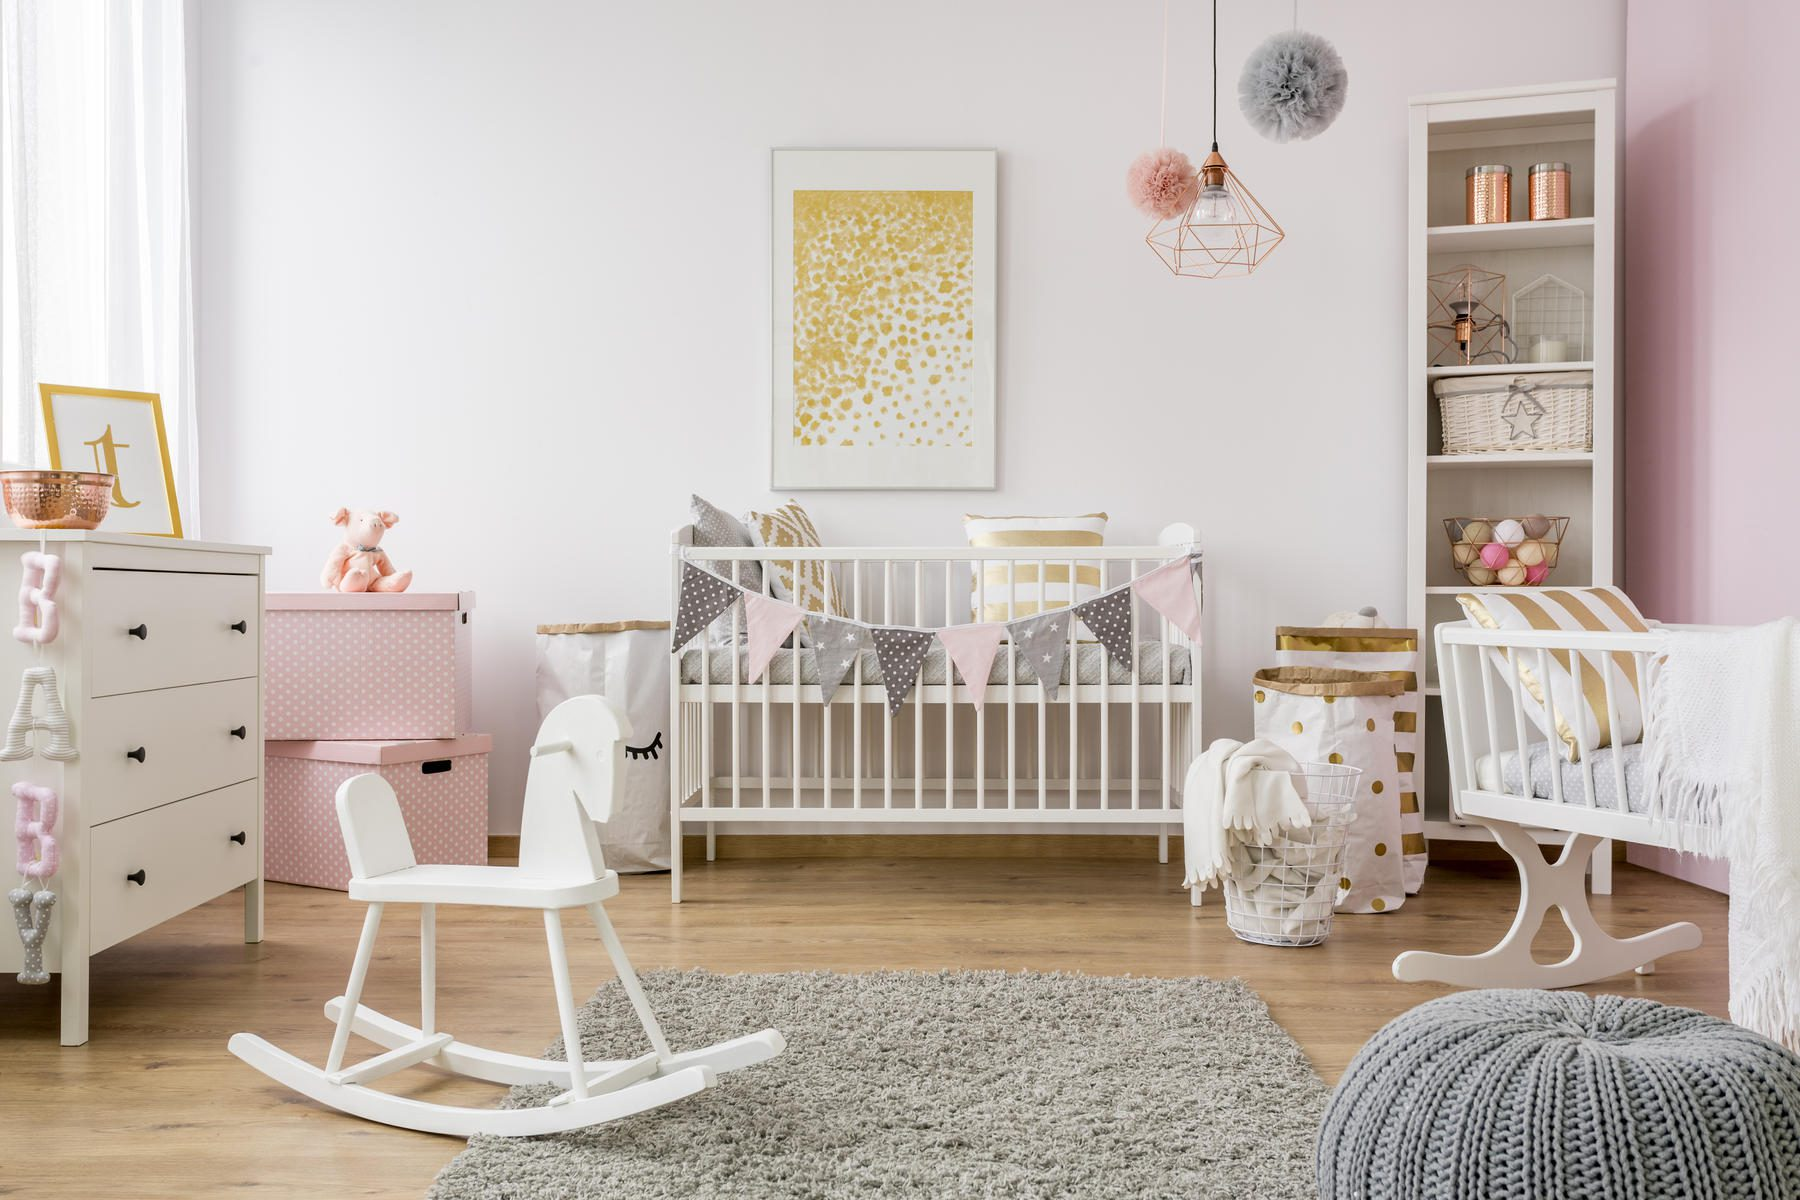 How To Design The Perfect Baby Nursery